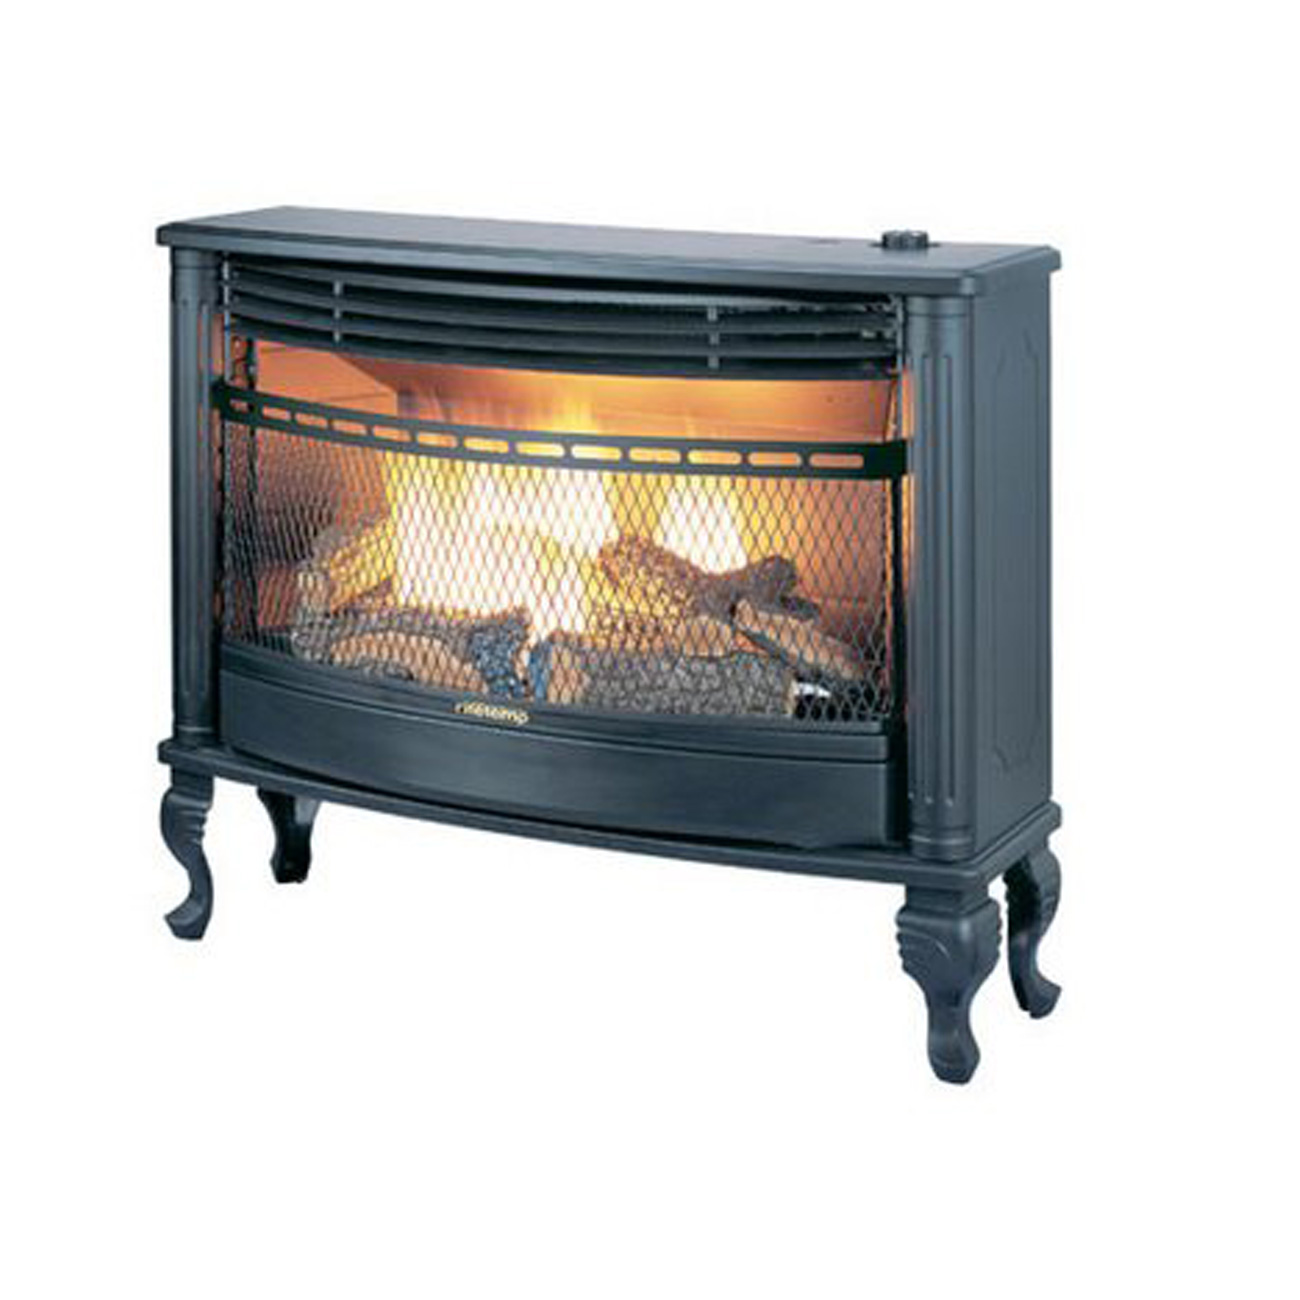 charmglow ventless gas stove series cg procom heating